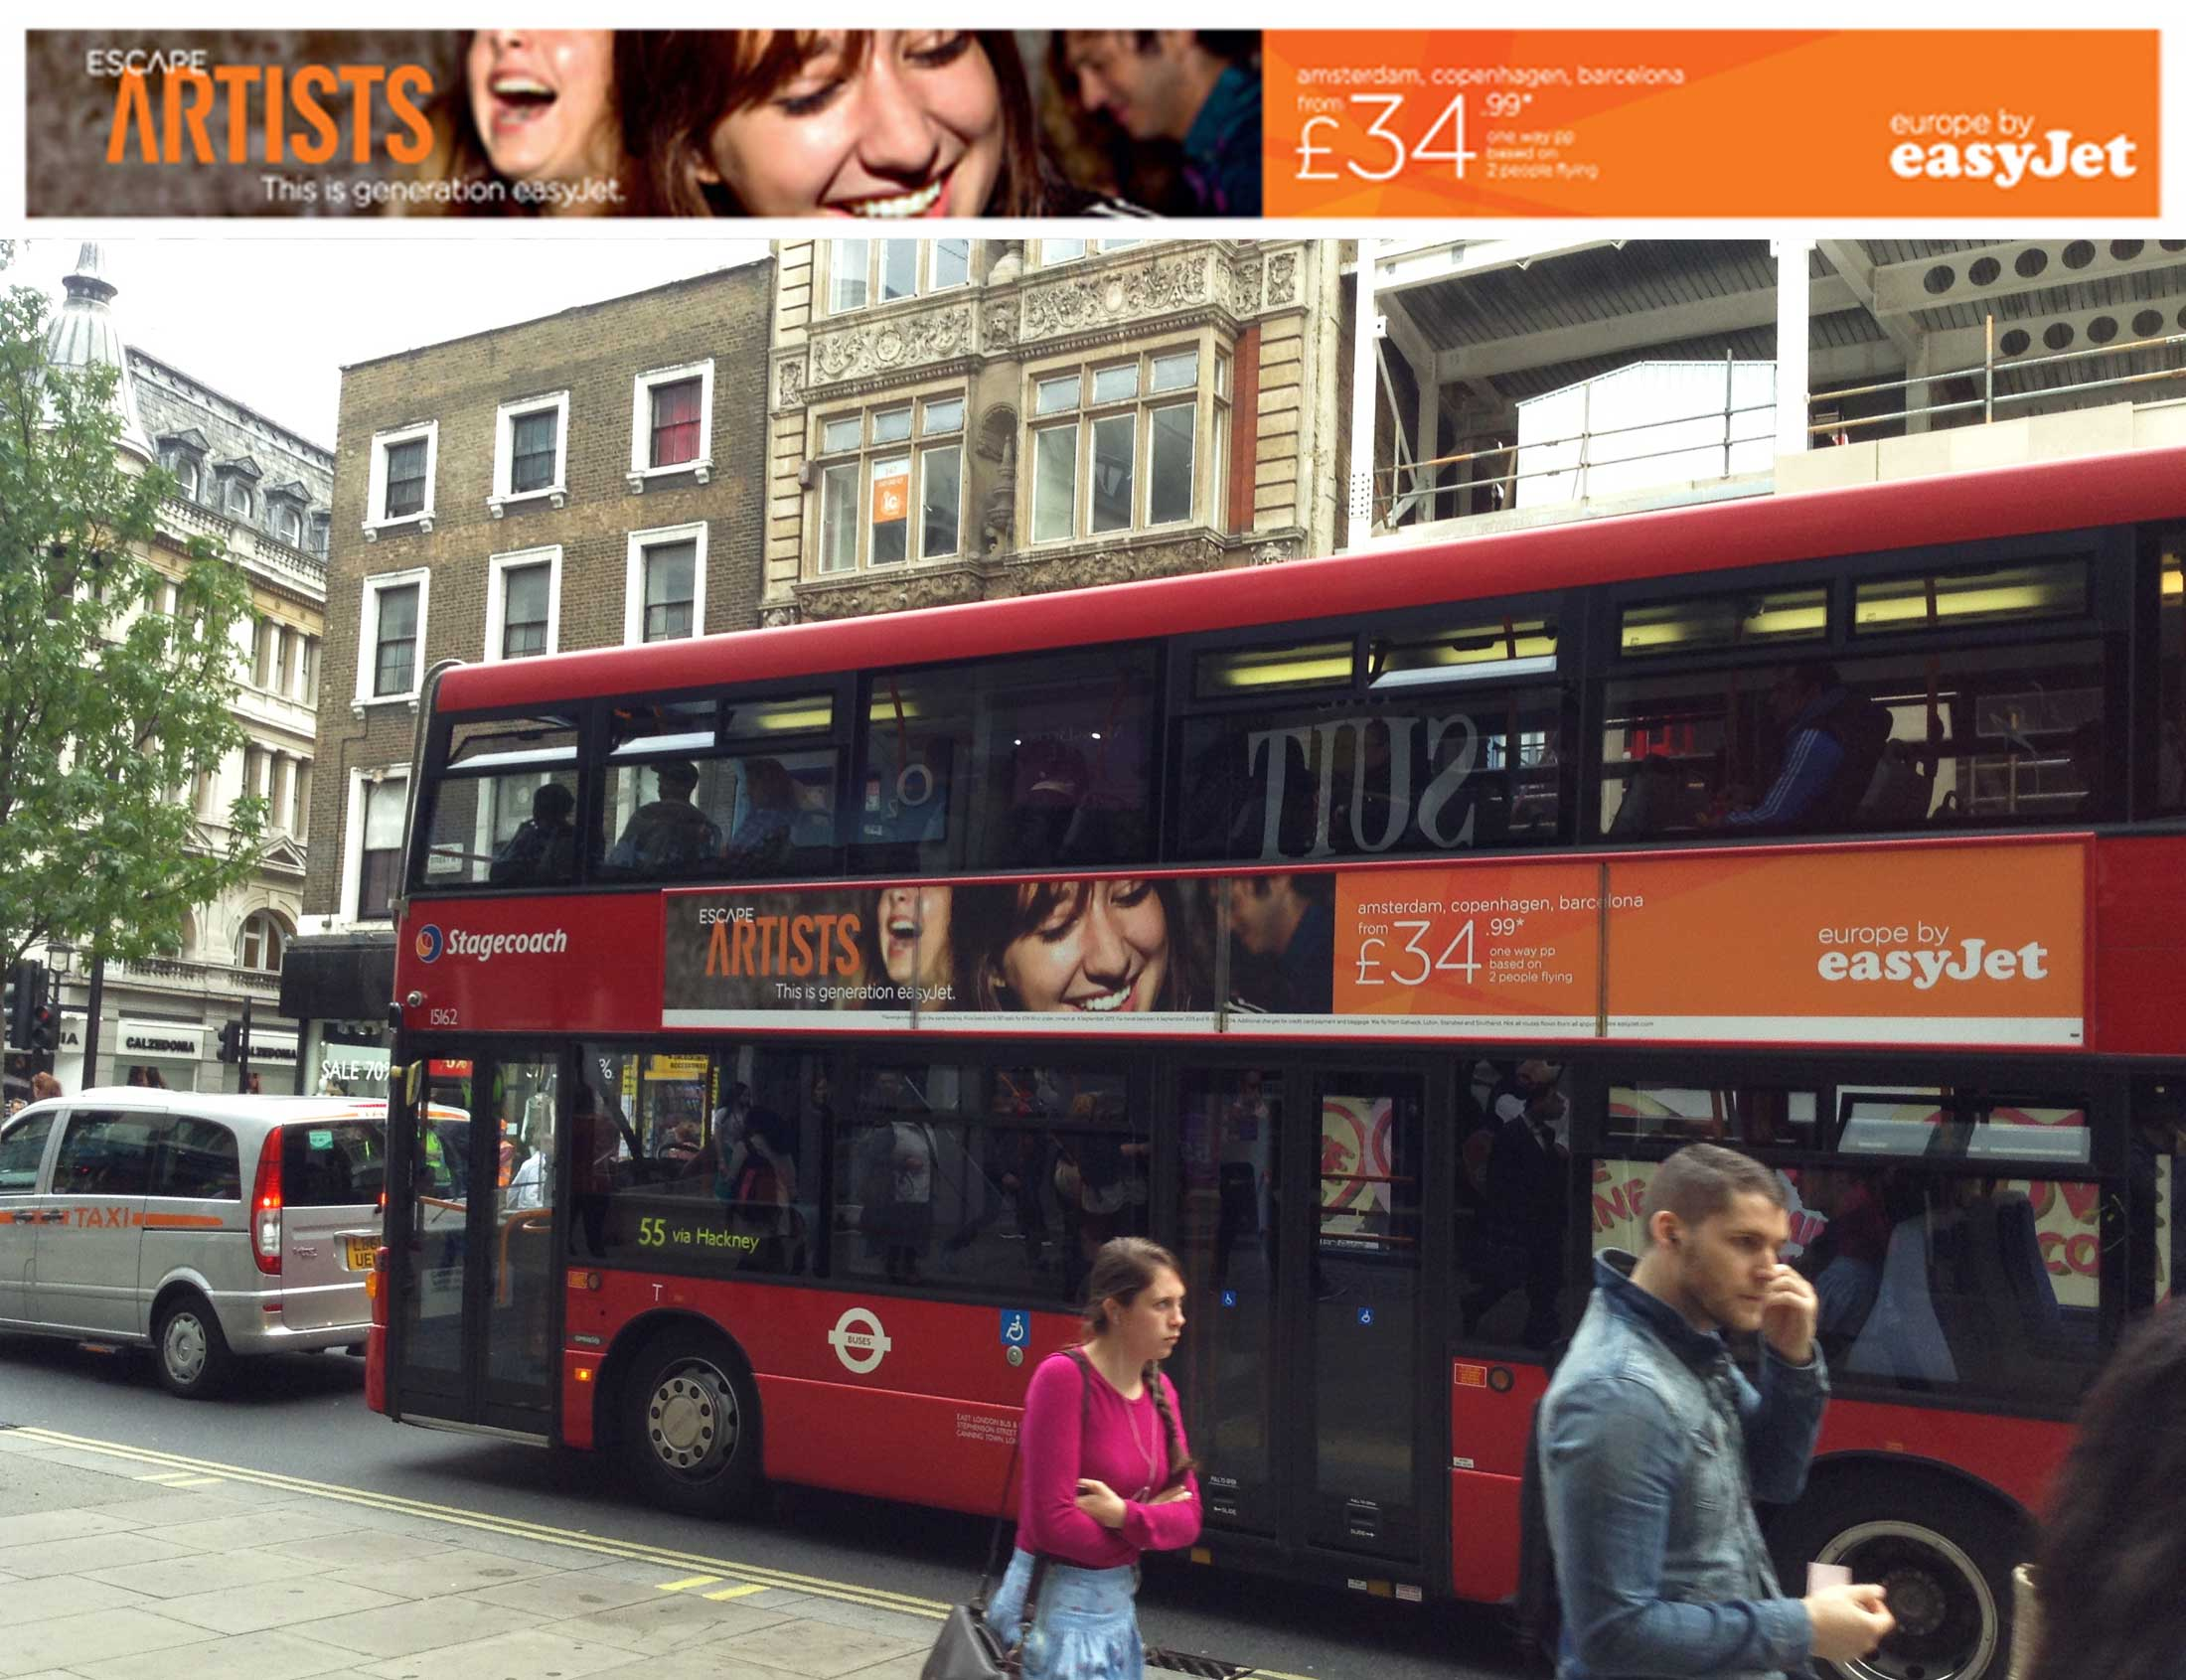 EASYJET_LONDON_BUS_JAZZMINEBEAULIEU_forwebpromo.jpg